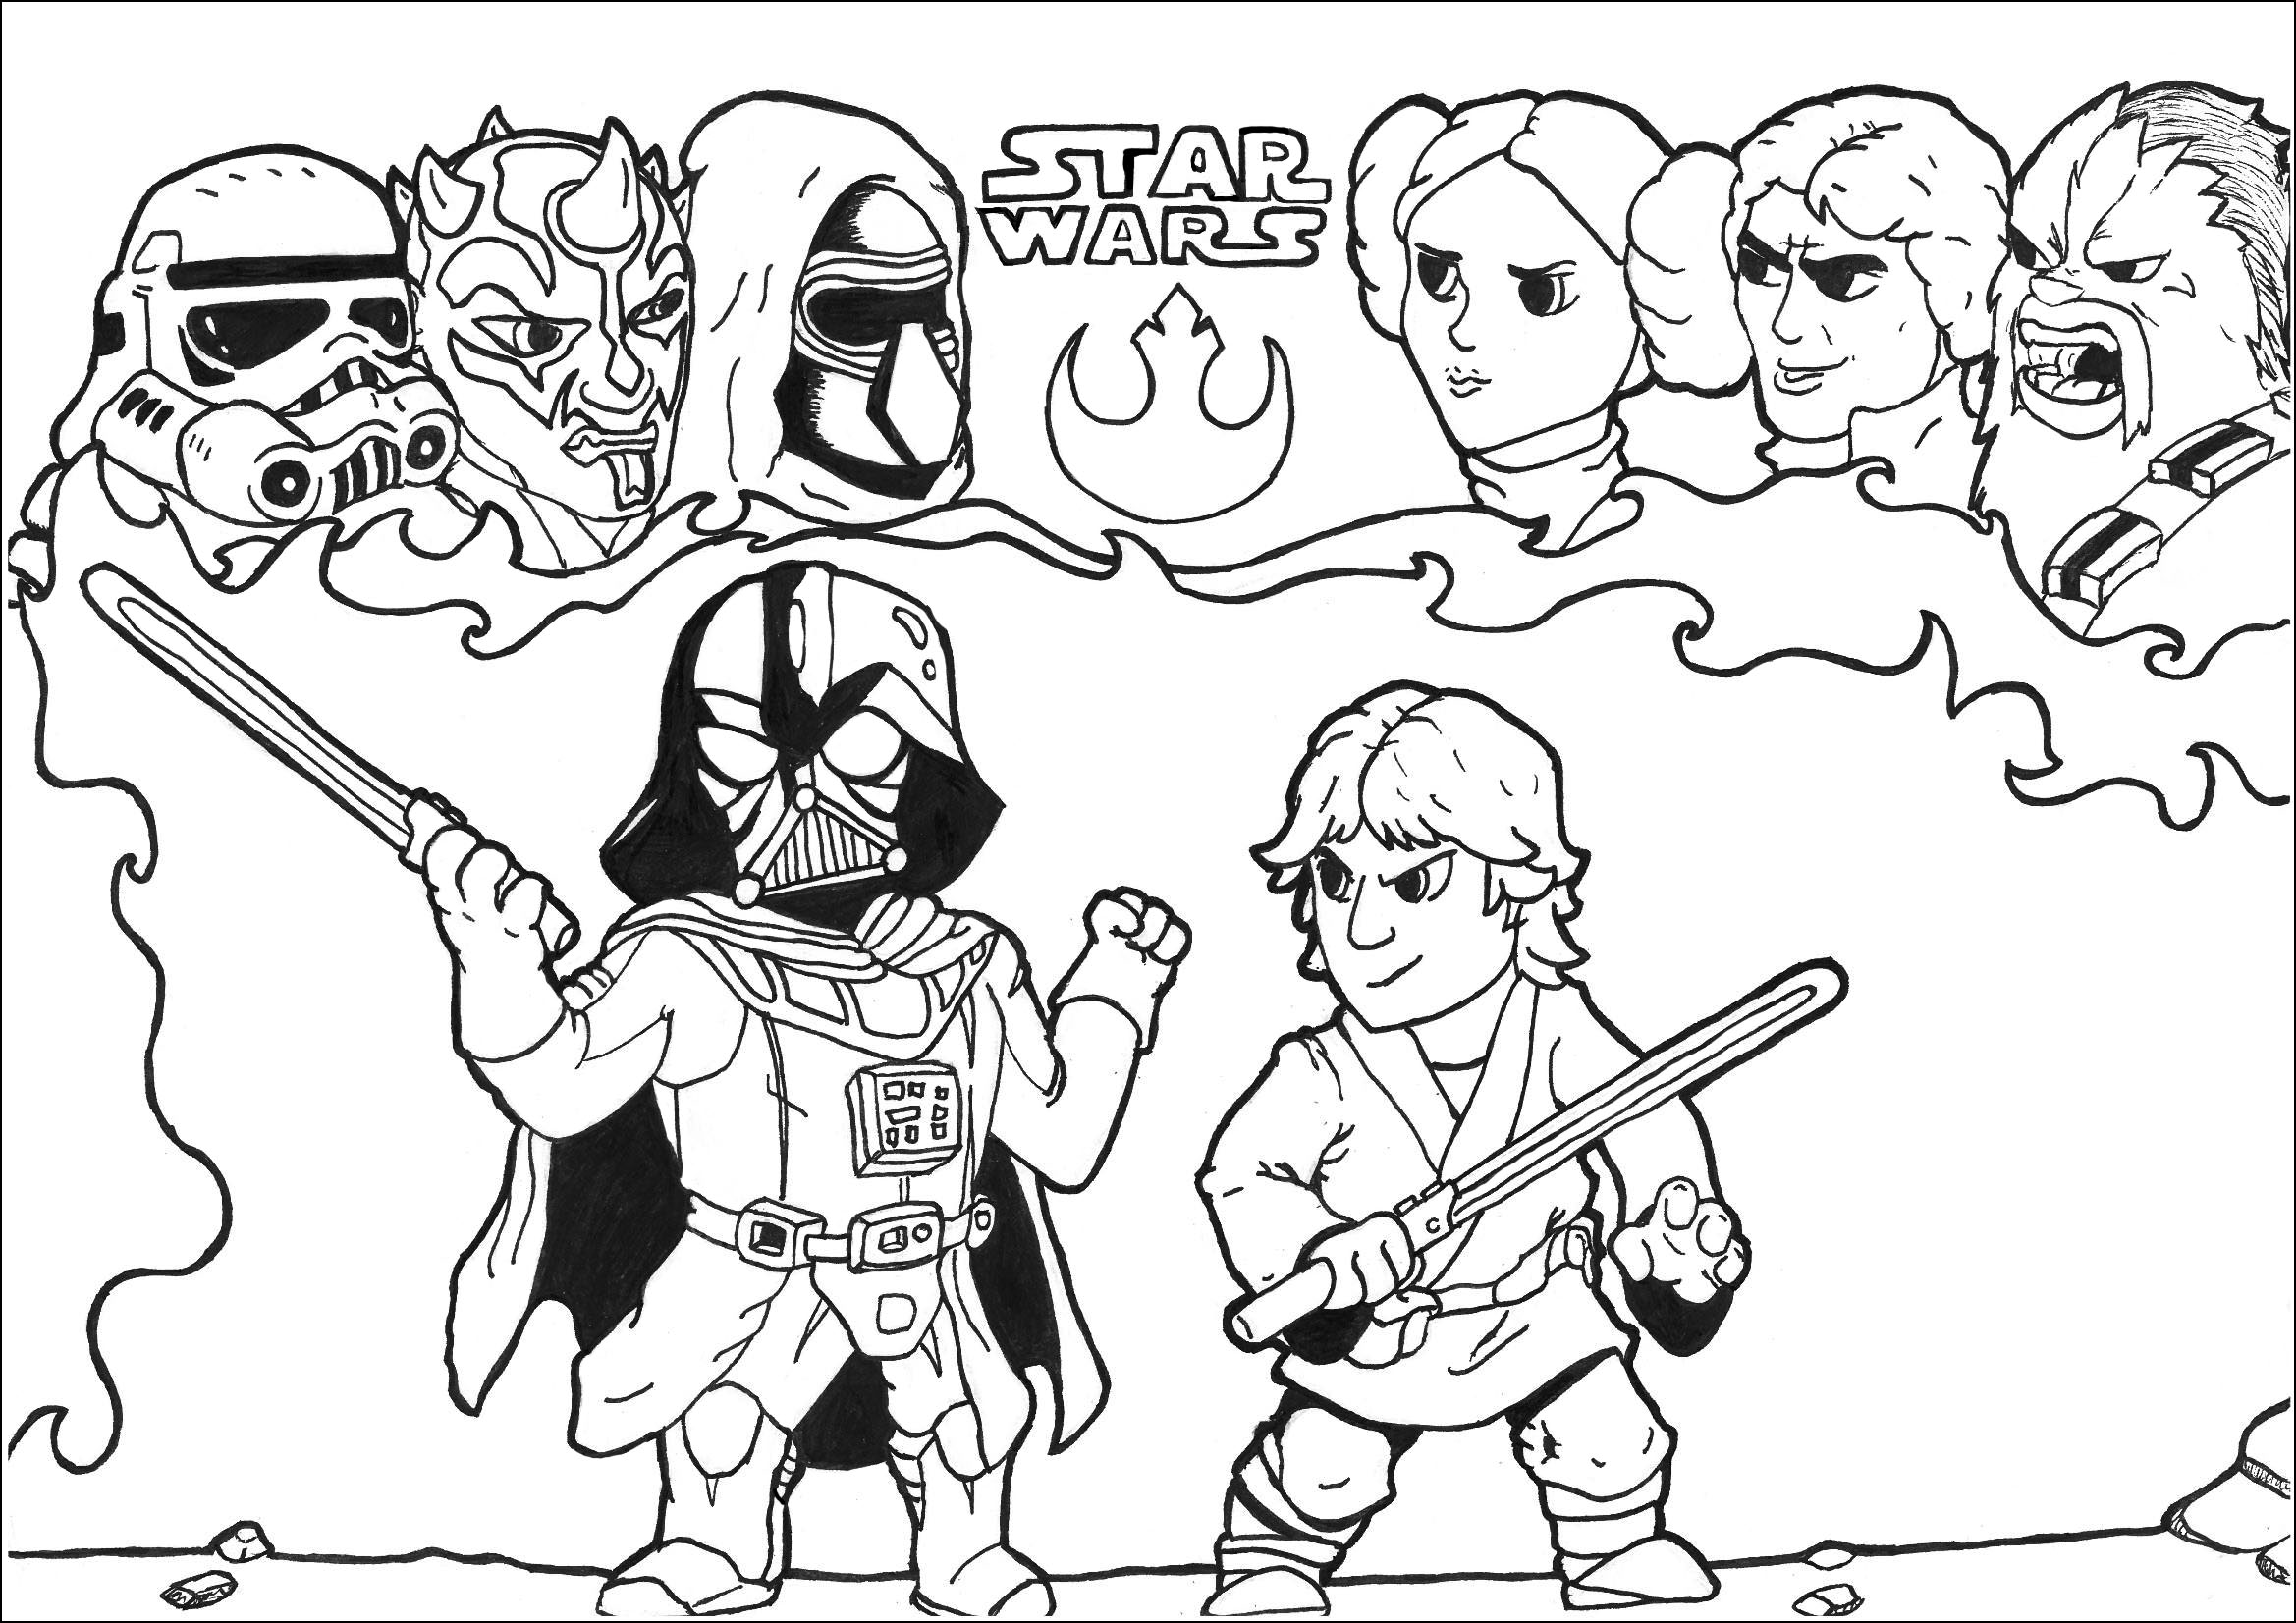 star wars pictures to color star wars to download star wars kids coloring pages to pictures star wars color